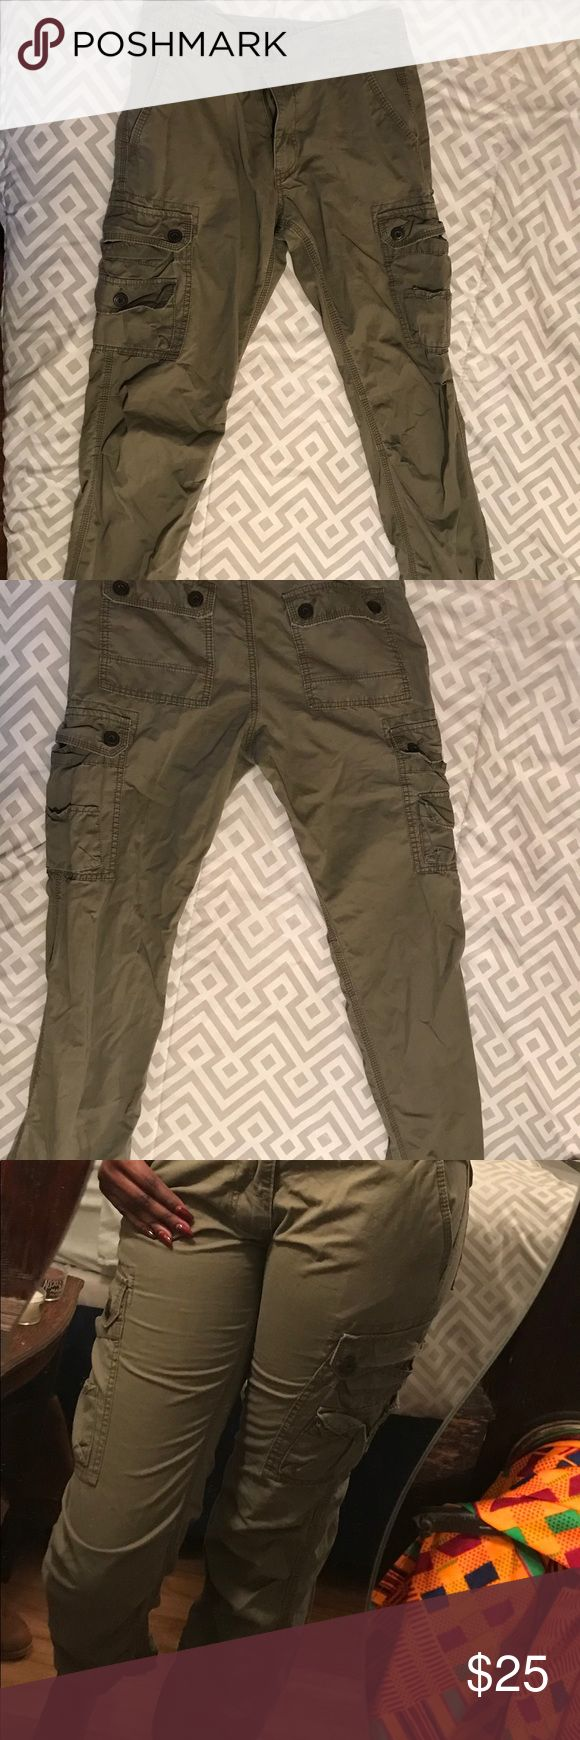 Old Navy Cargo Pants Old Navy Cargo Pants. Gently used condition. Size: 28/30 fits like a true size 3/4. Pants